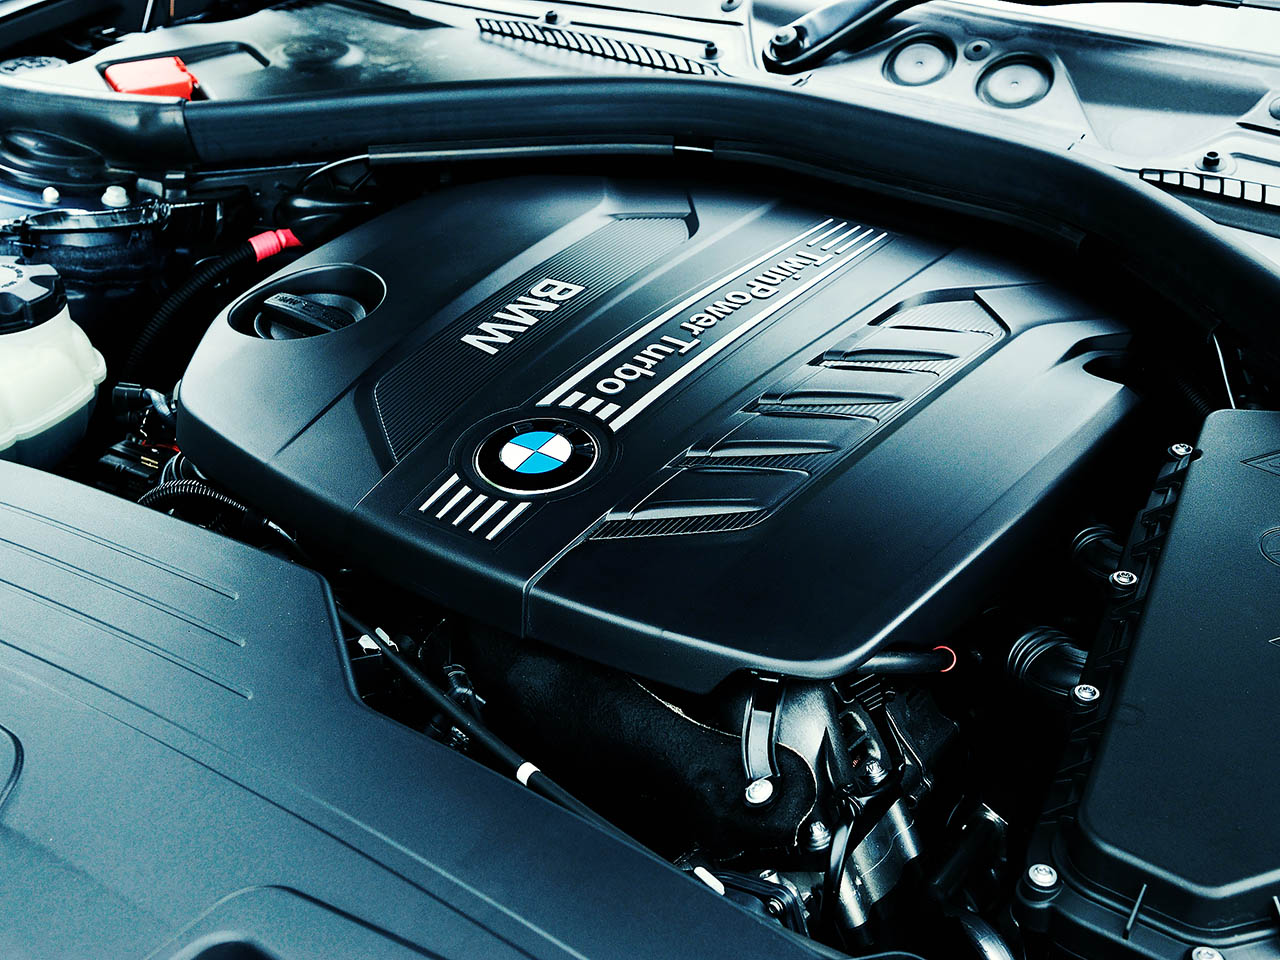 Buying Guide How to bag the best BMW F20/1 1 Series diesel hatchback